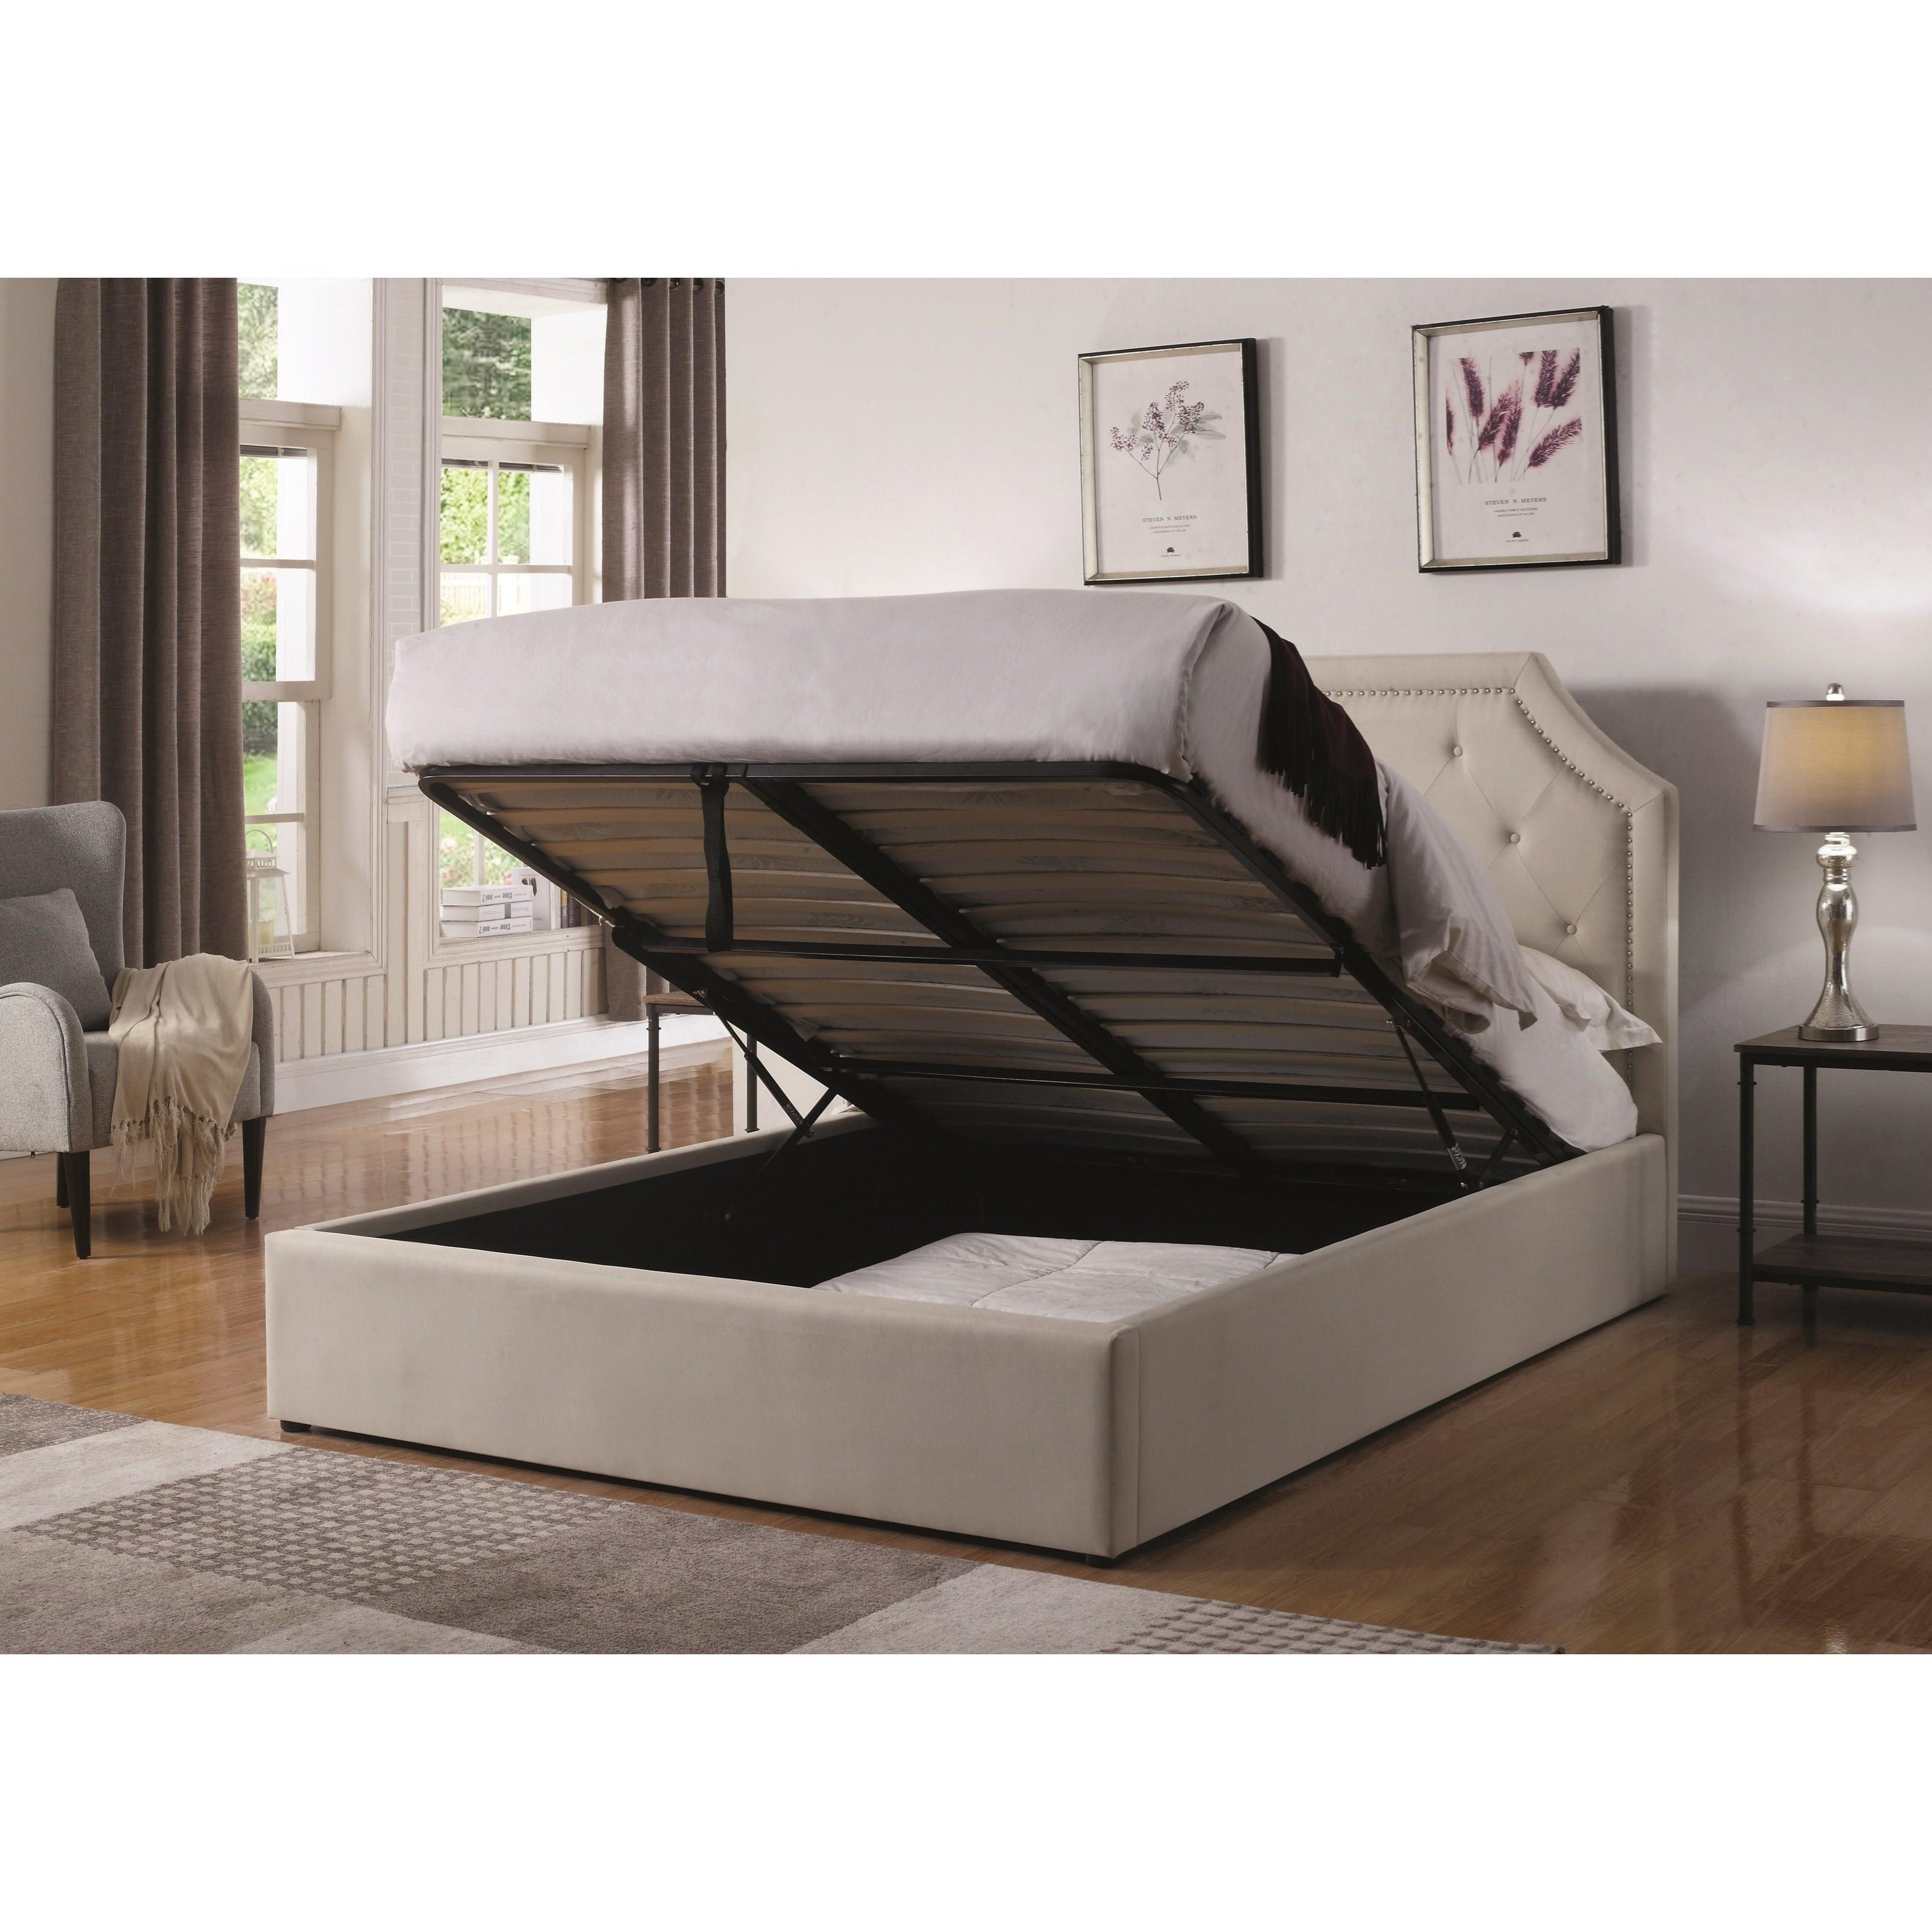 Hydraulic Lift Storage Bed Twin : Coaster hermosa t twin upholstered bed with